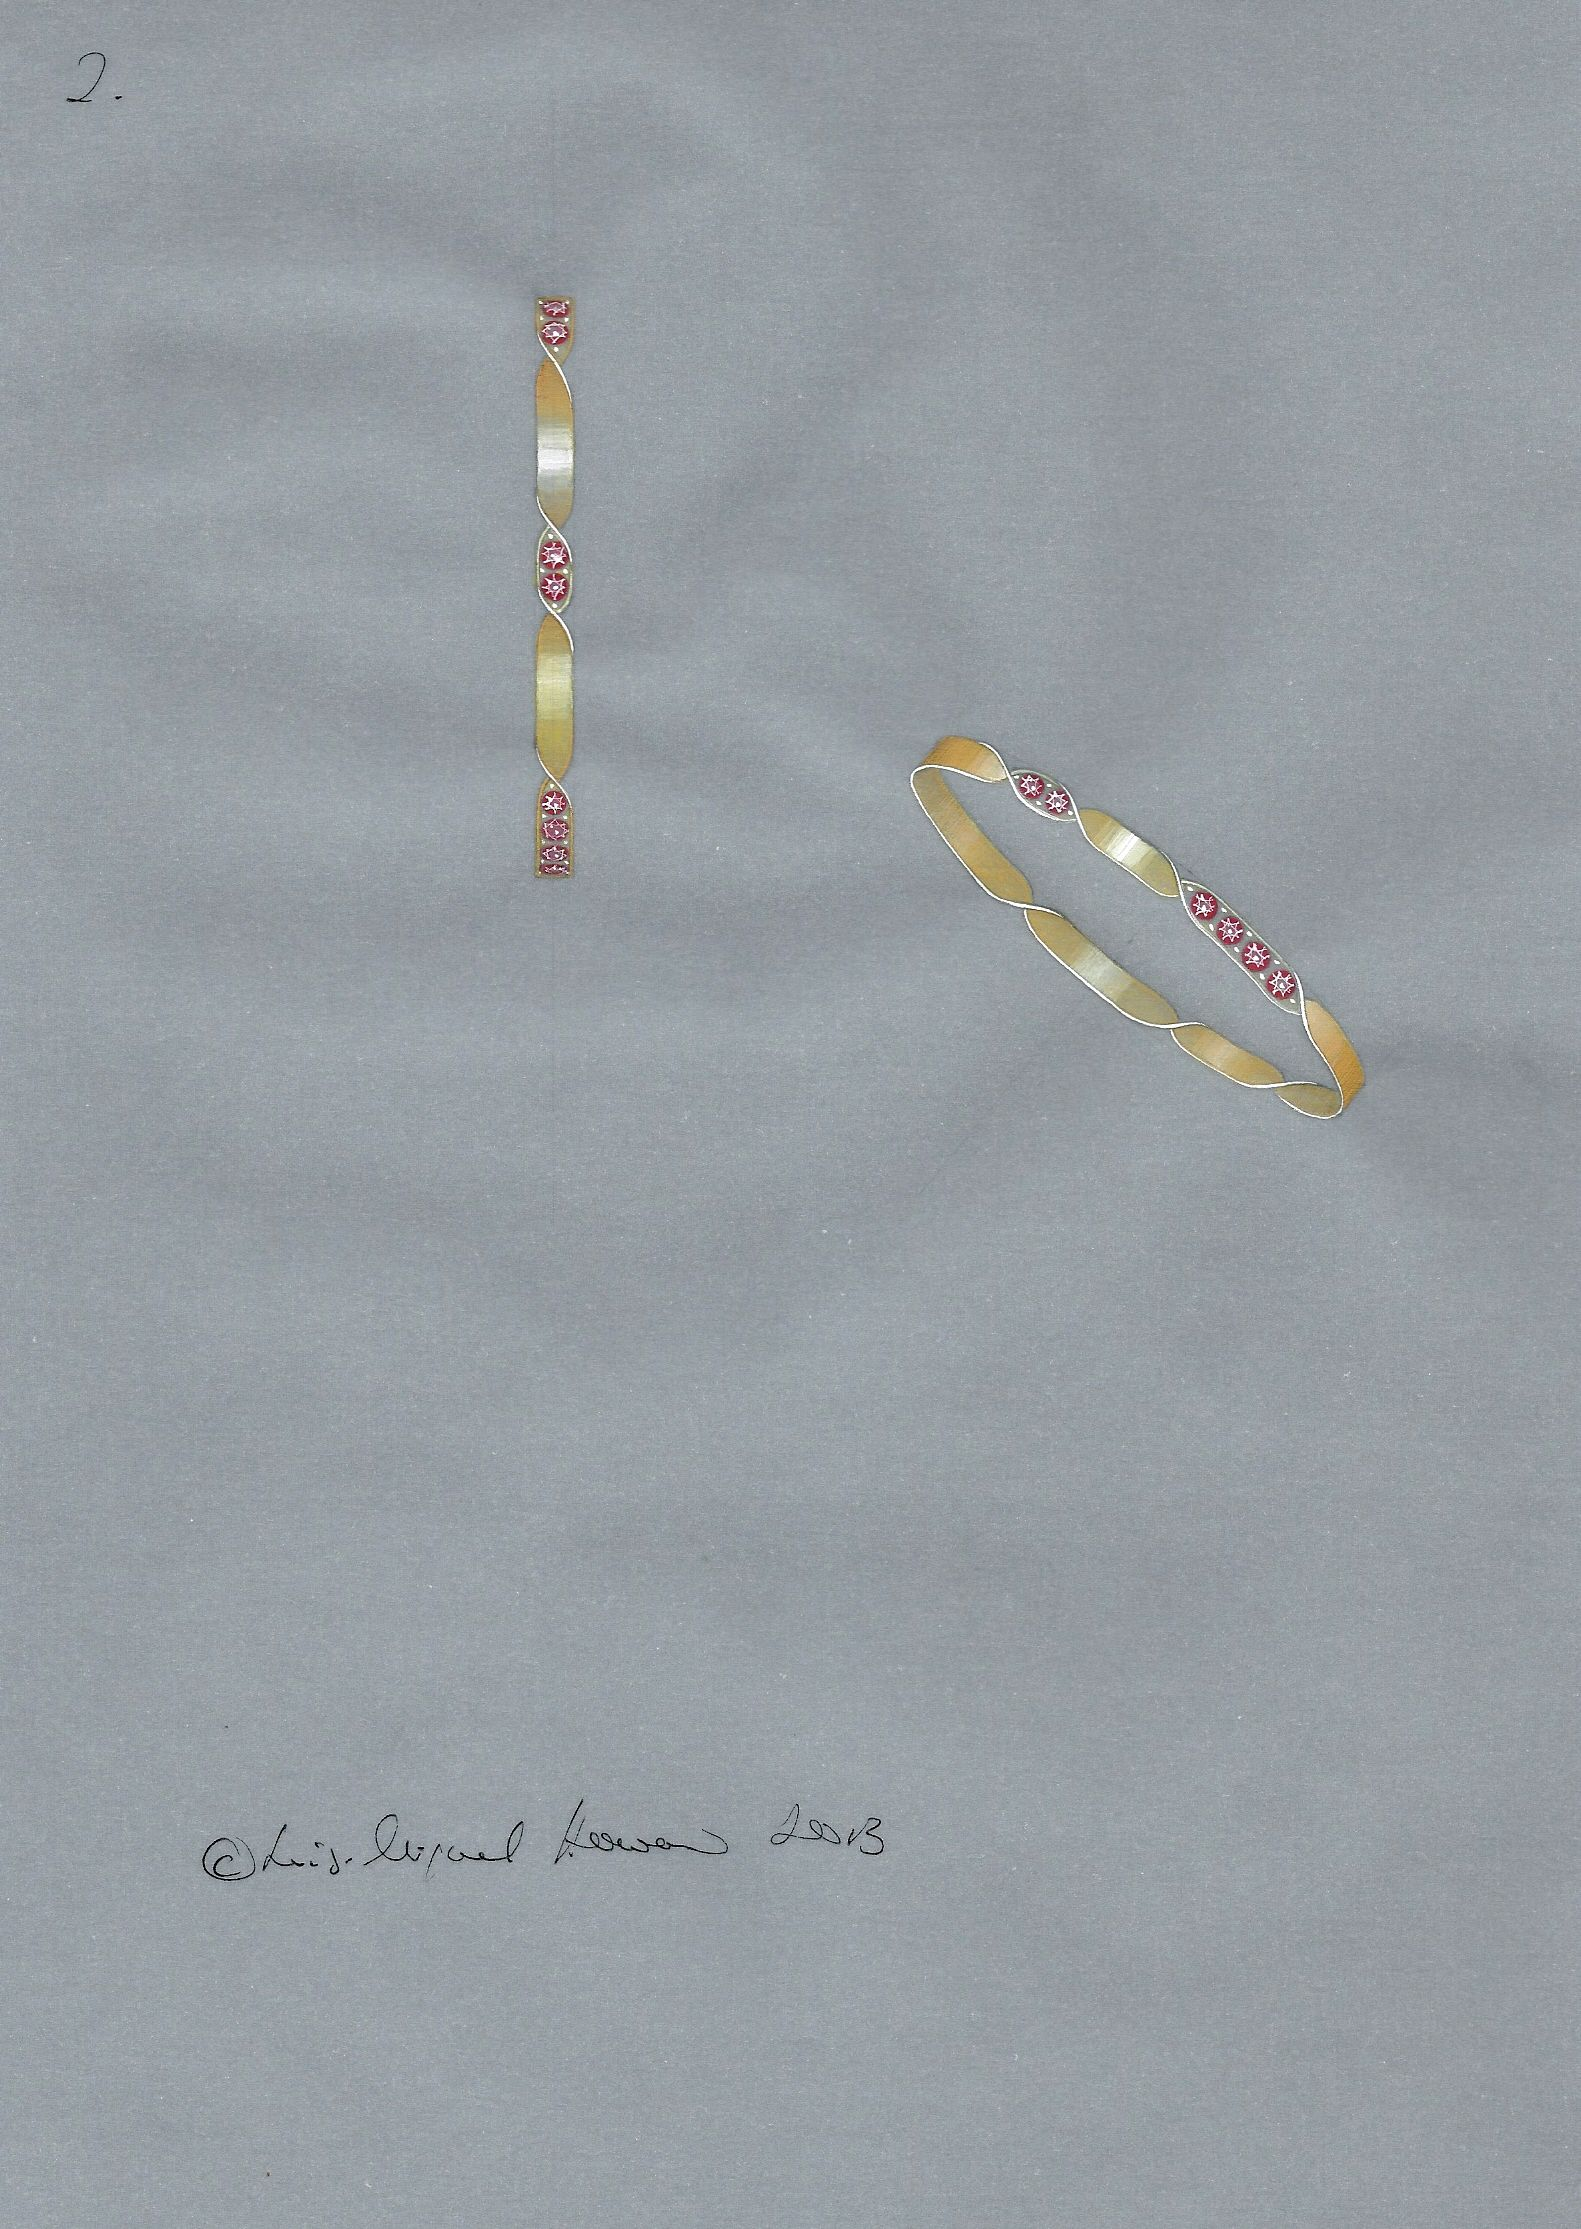 Design proposal in gouache for a gold and ruby bracelet jewellery